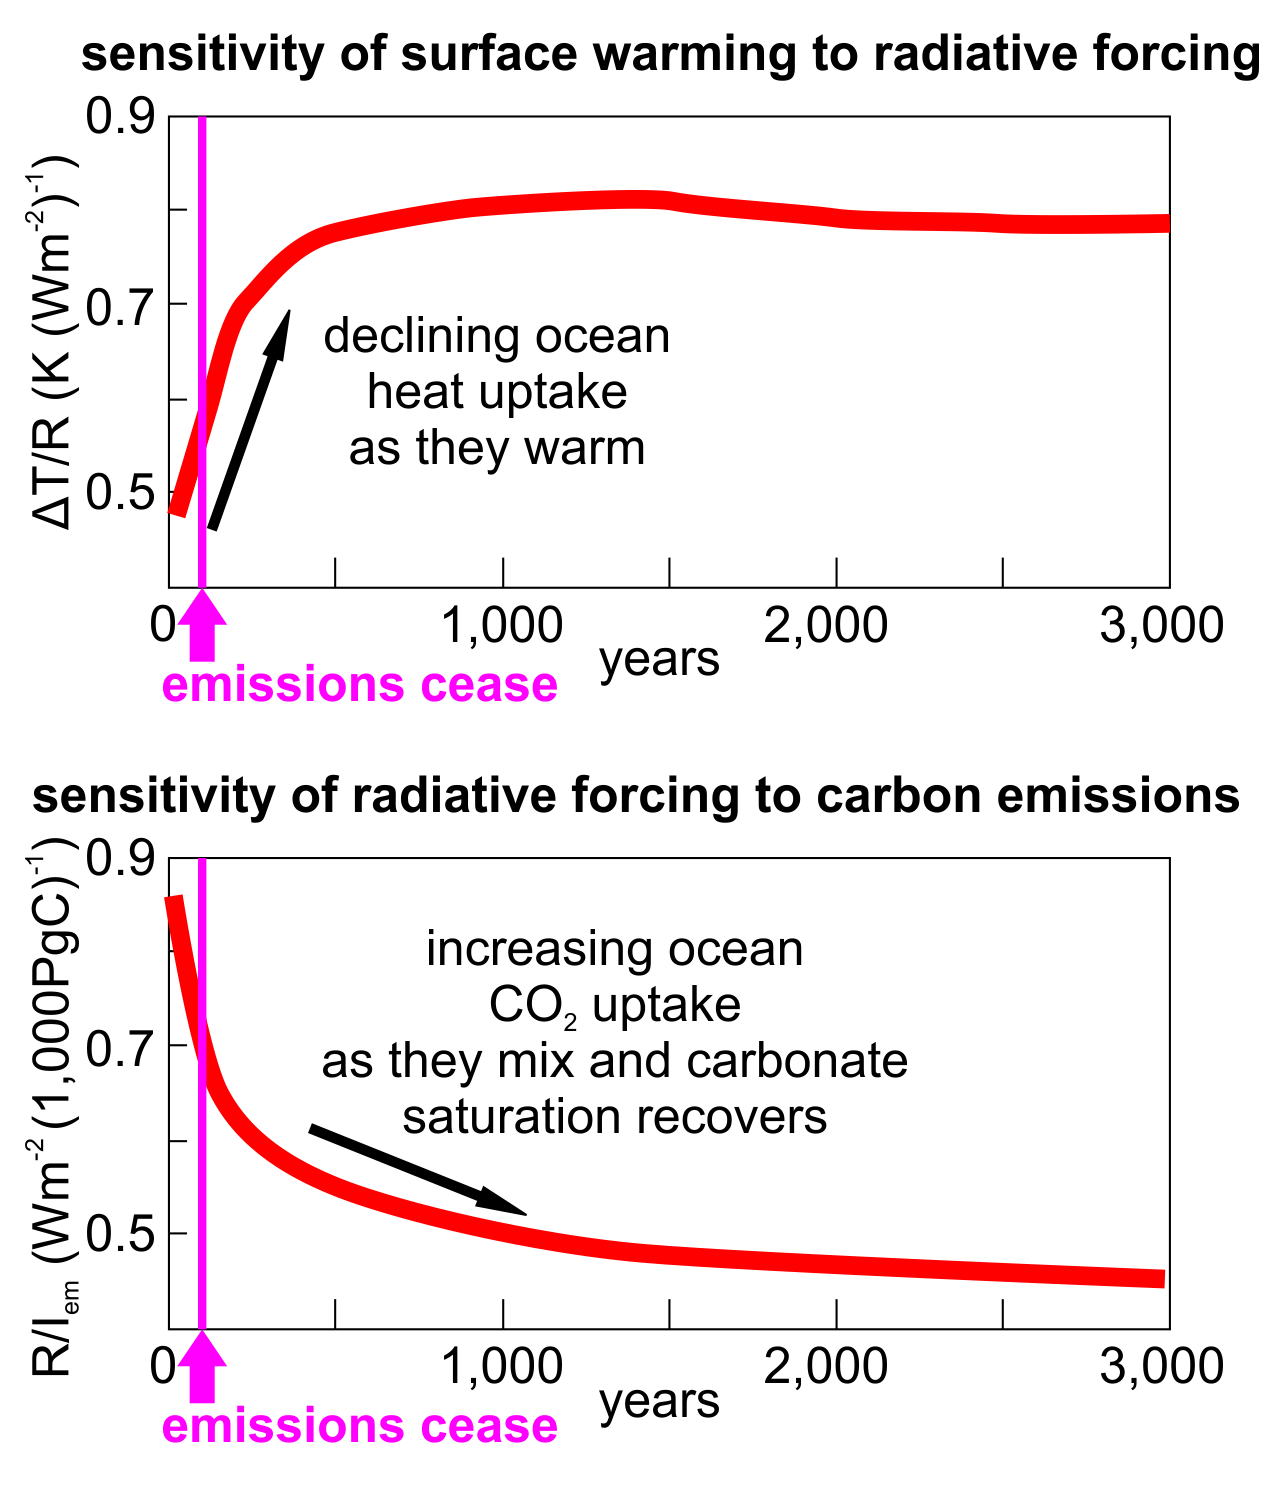 Heat and carbon uptake response to carbon emissions over 3 millennia